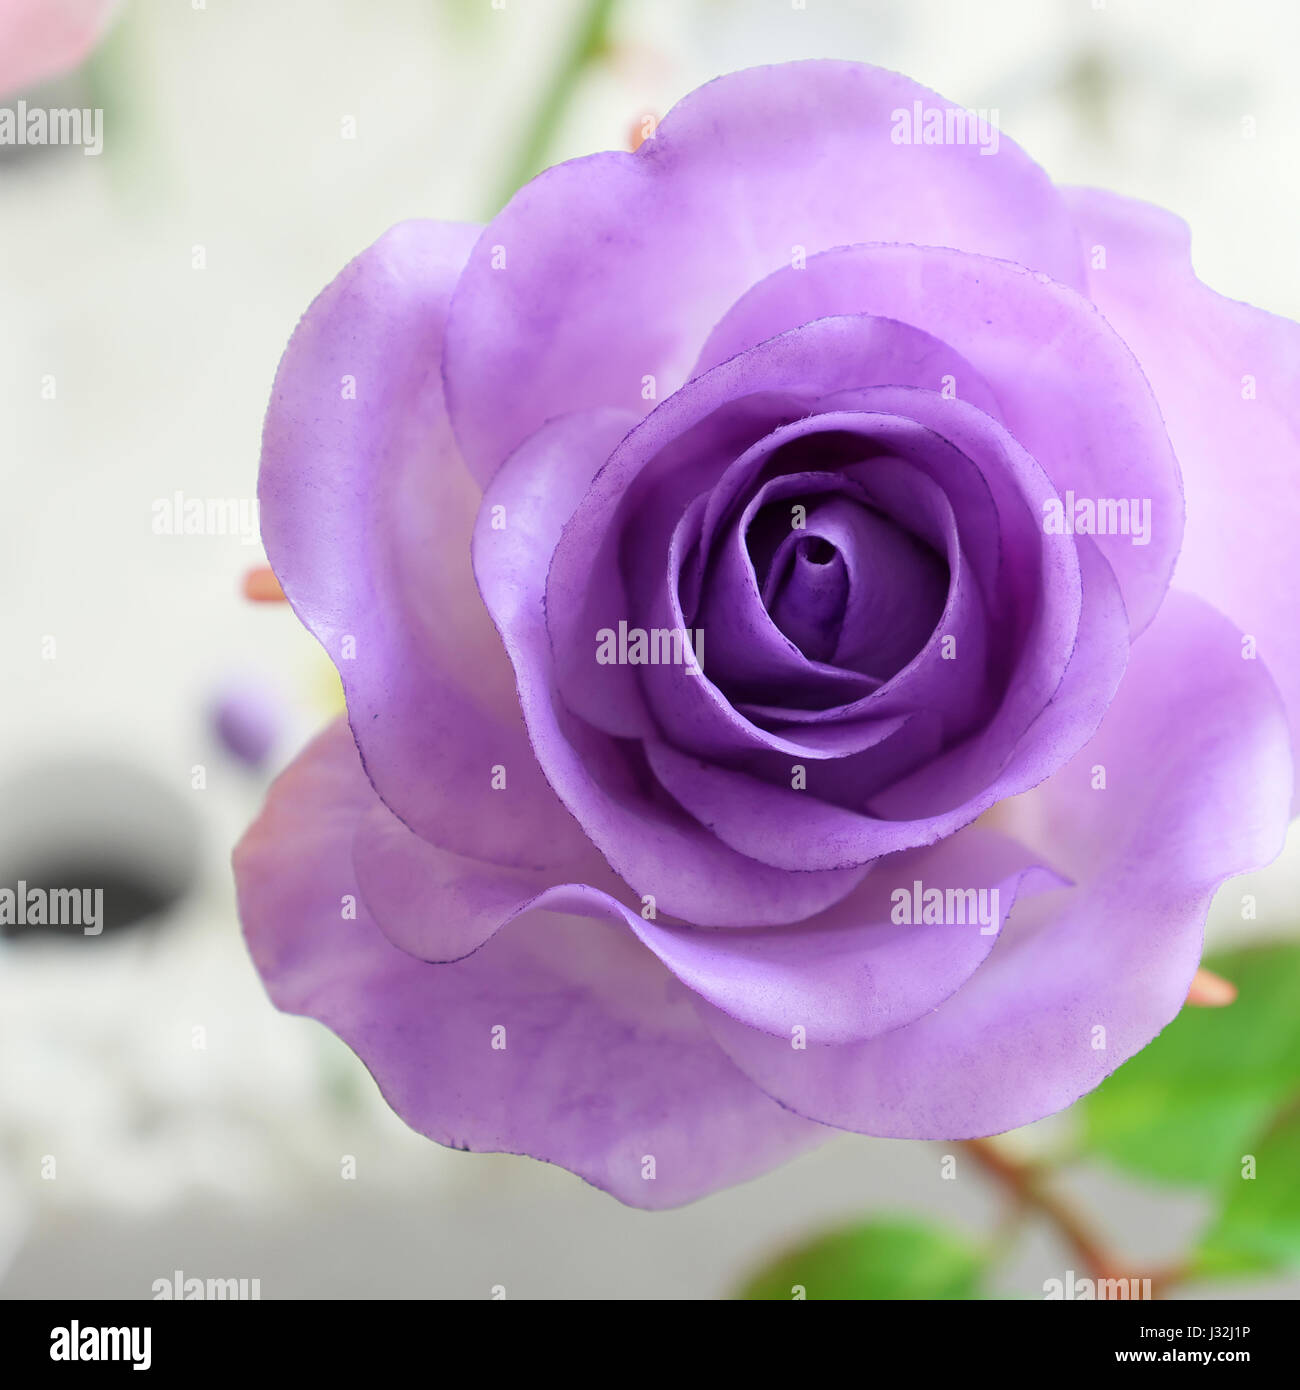 Wonderful Clay Art Close Up Of Violet Rose Flower Beautiful Stock